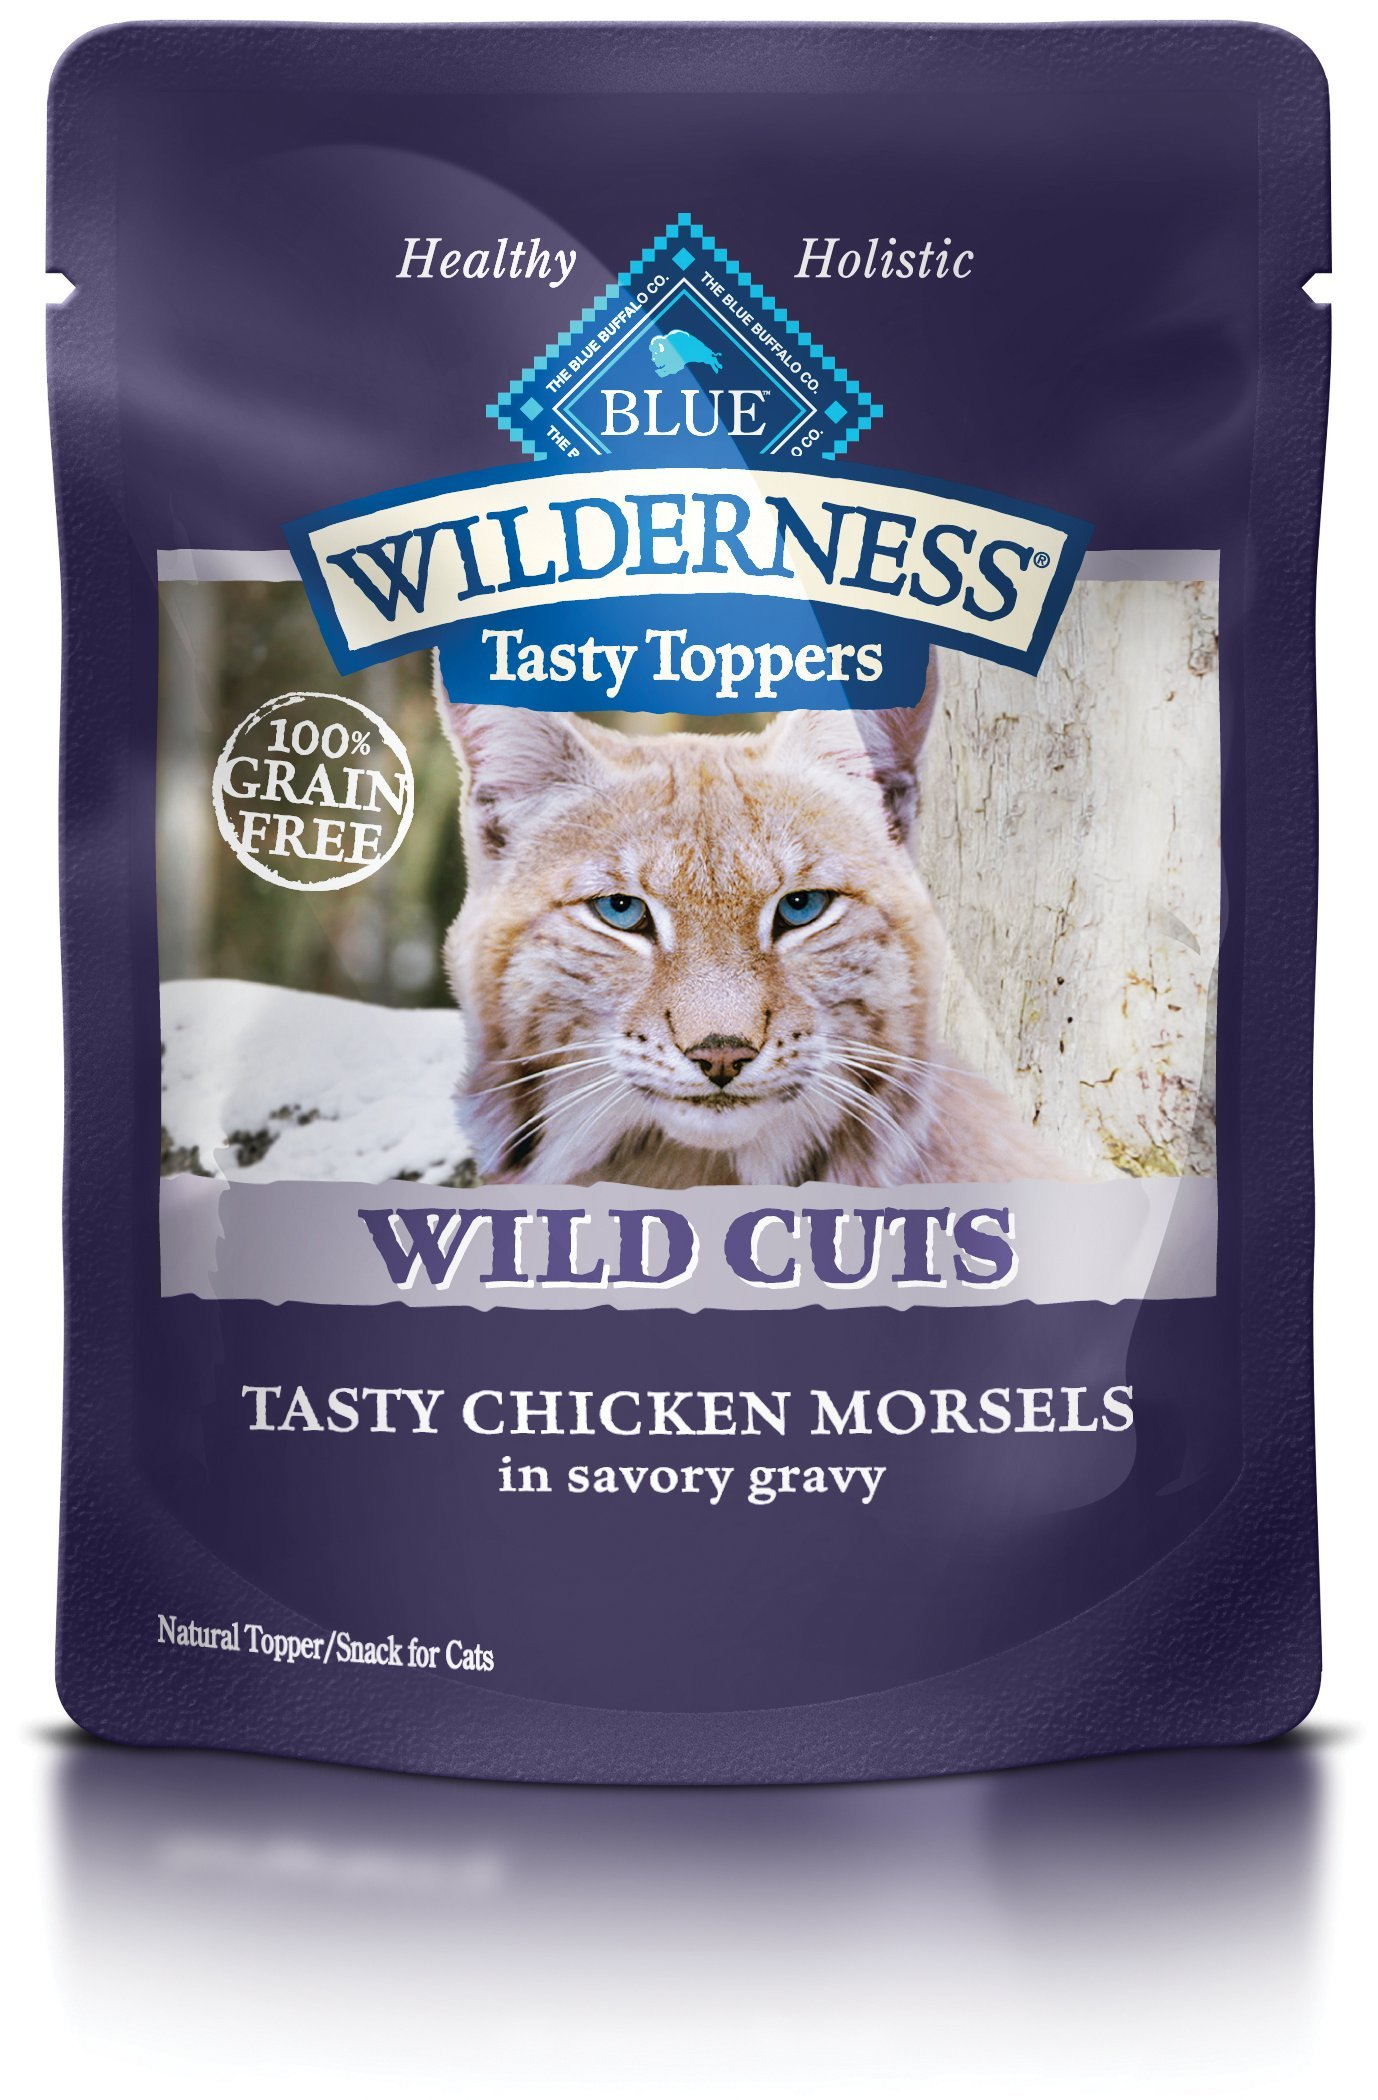 BLUE Wilderness Tasty Toppers Wild Cuts Grain Free Tasty Chicken Morsels in Savory Gravy Wet Cat Food 3-oz (pack of 24) by Blue Buffalo